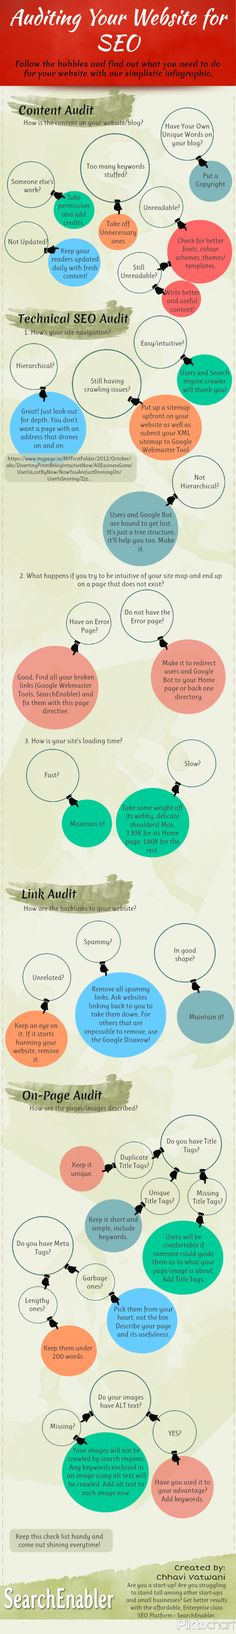 How to Perform Your Site/Blog #SEO Audit [INFOGRAPHIC]  #infographic #Audit